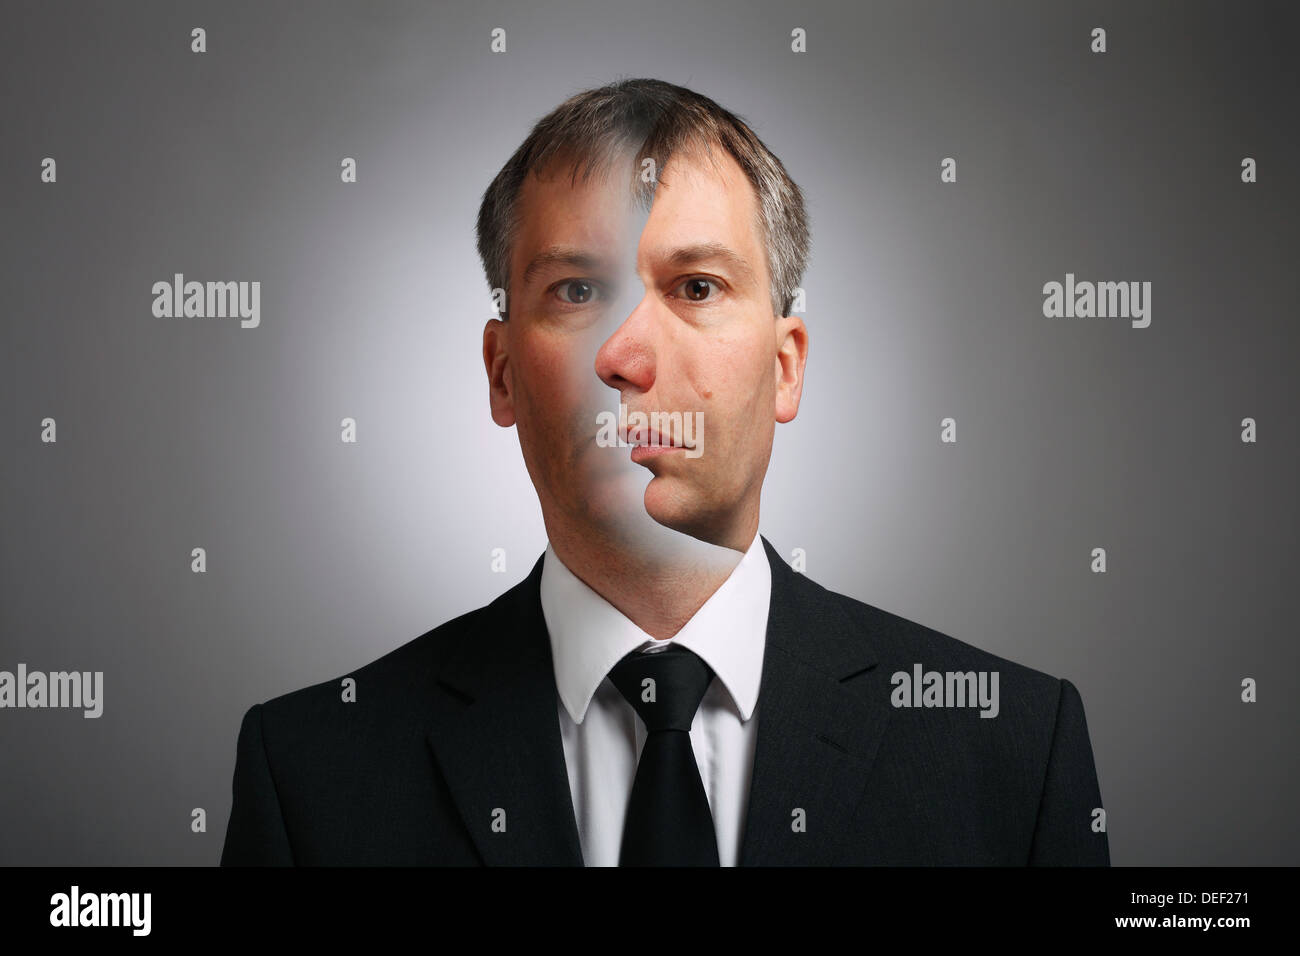 Optical Illusion of man with two faces - Stock Image